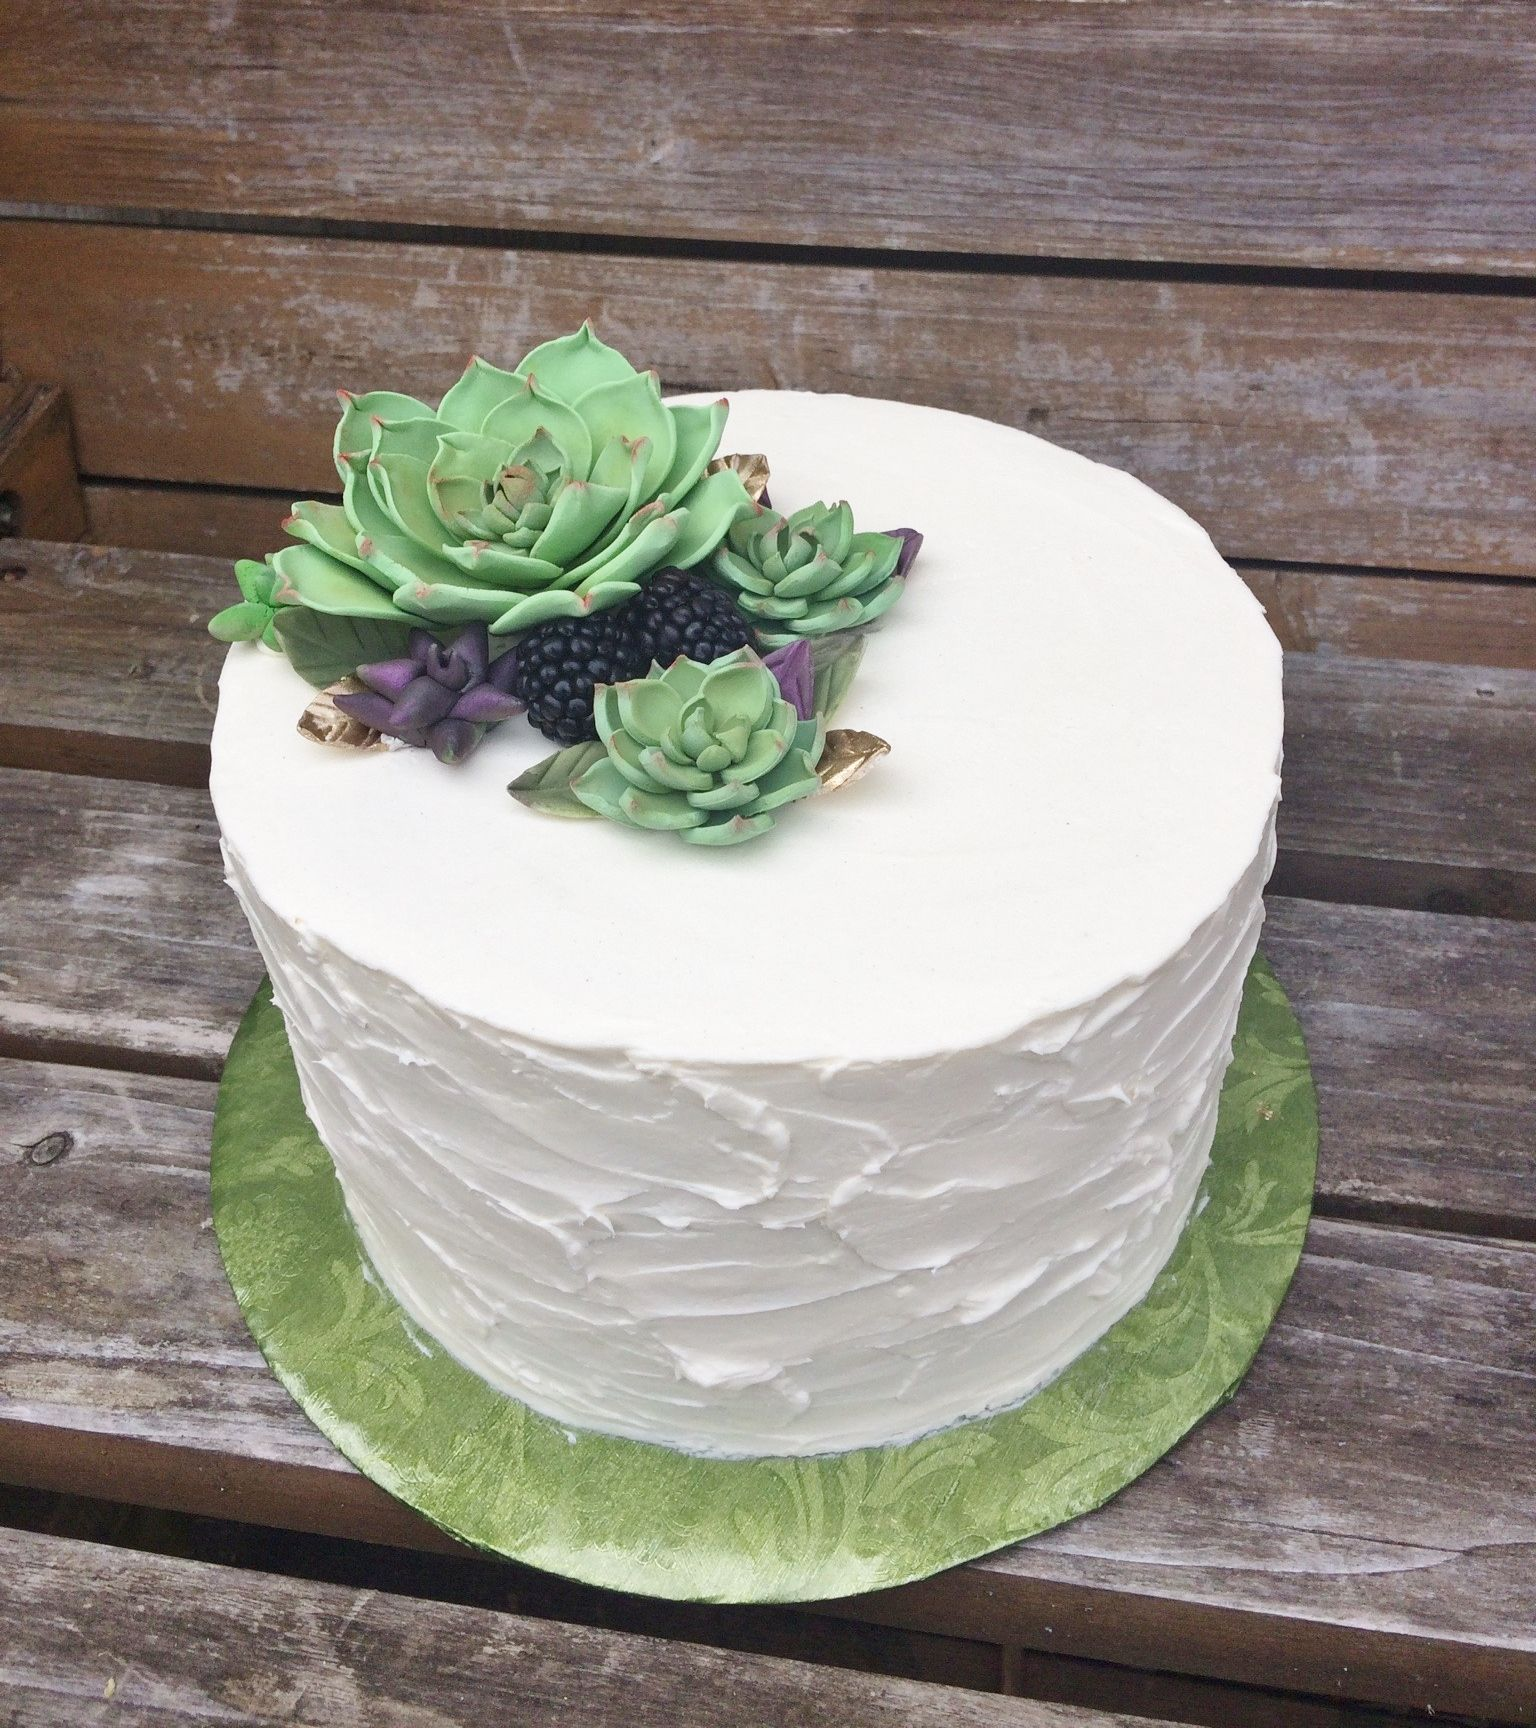 Beautiful Wedding Cakes By The Baking Grounds Bakery Café: Textured Buttercream